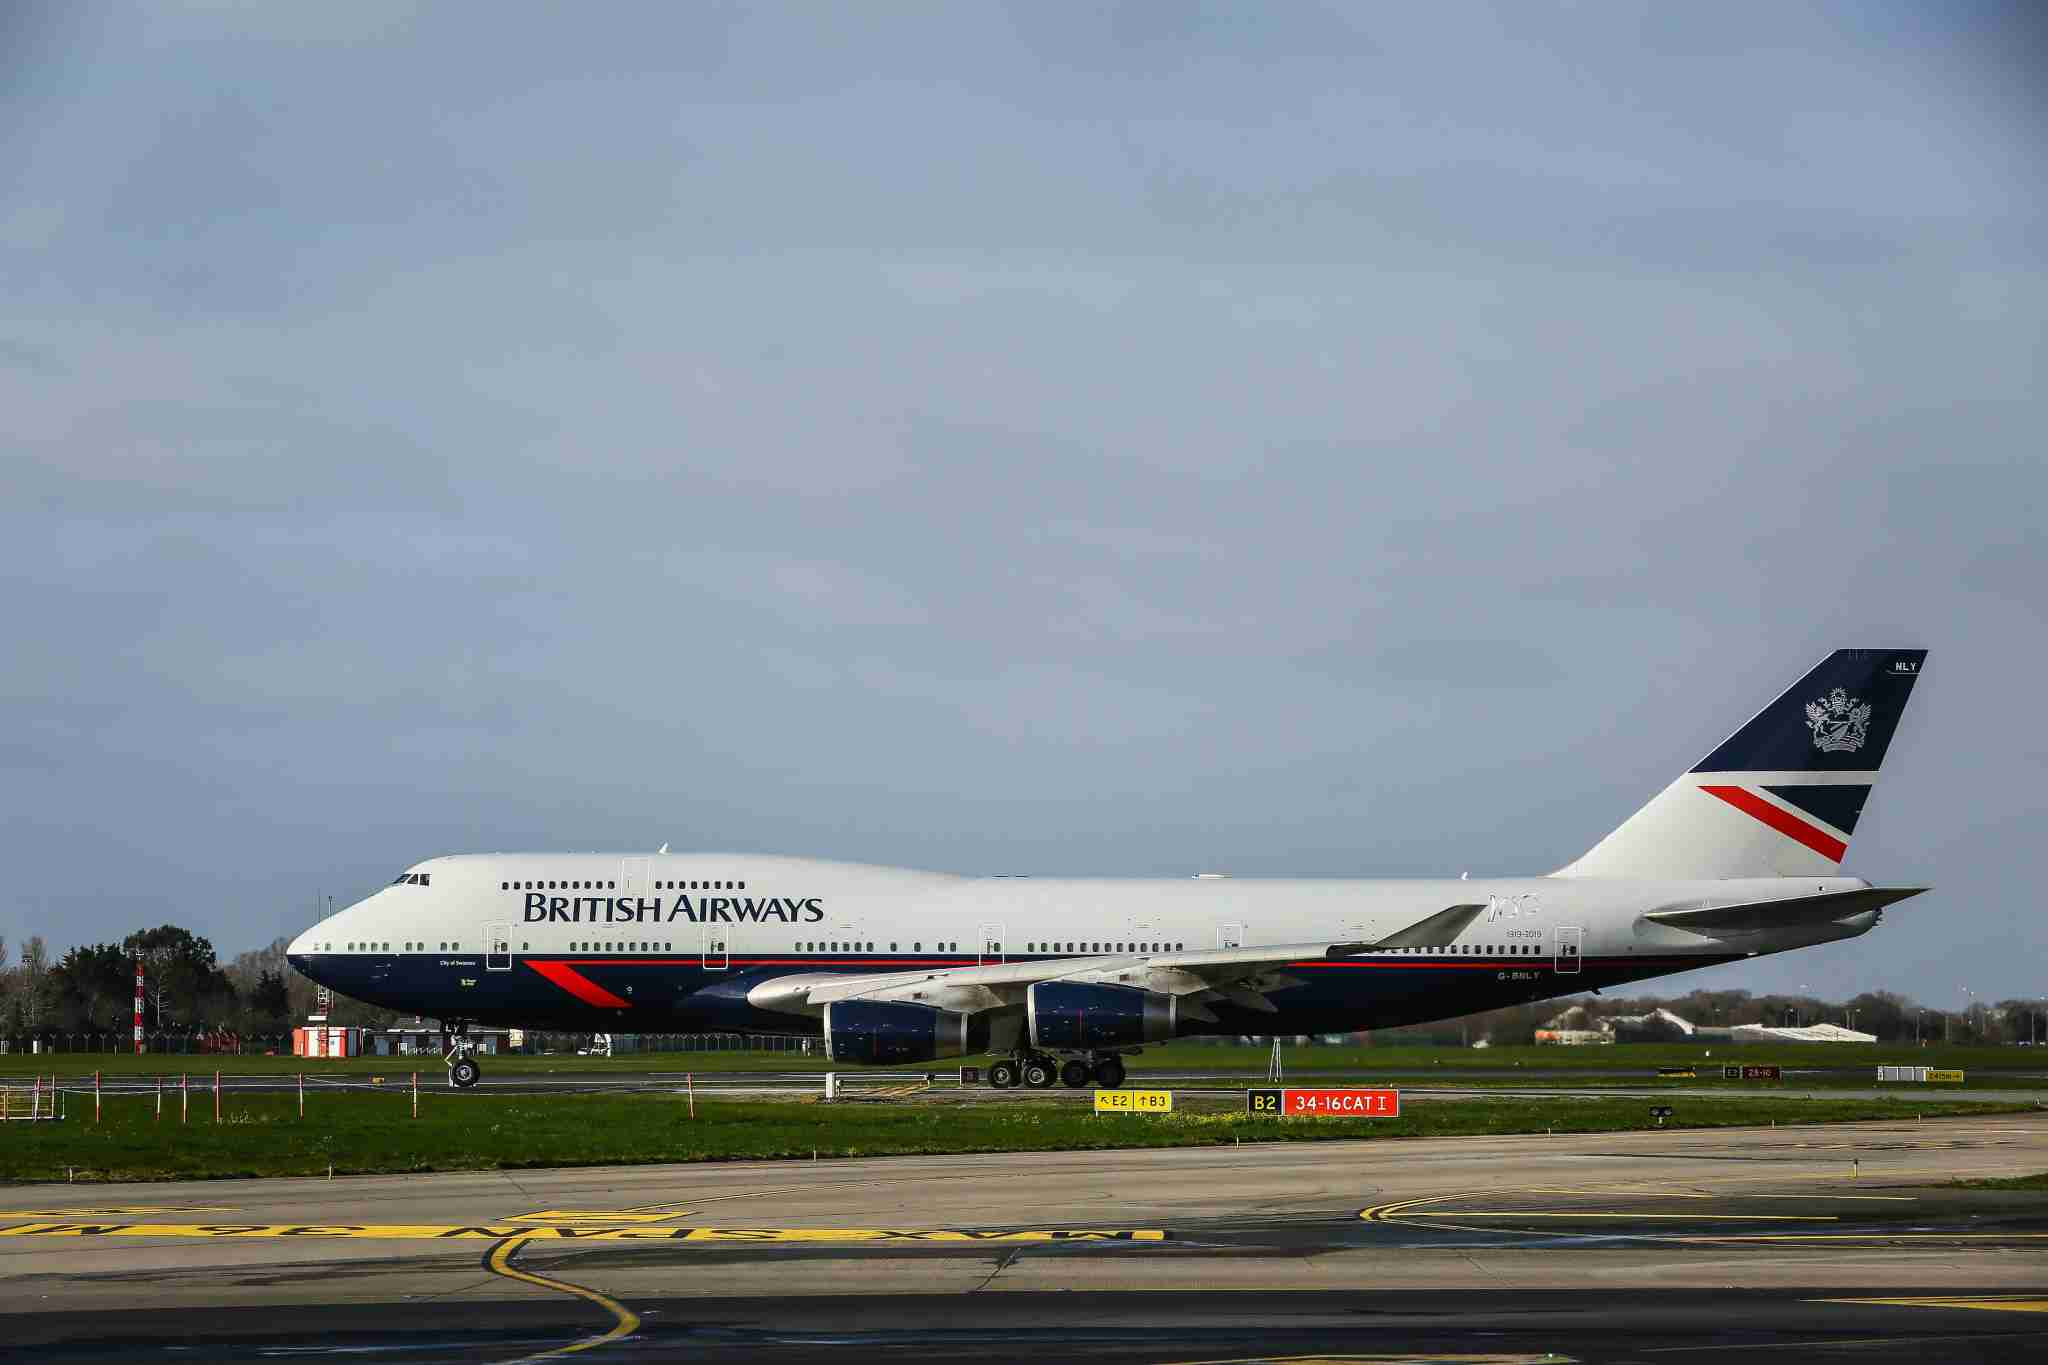 British Airways special Landor livery Boeing 747-400. Photo by Nicky Kelvin / The Points Guy